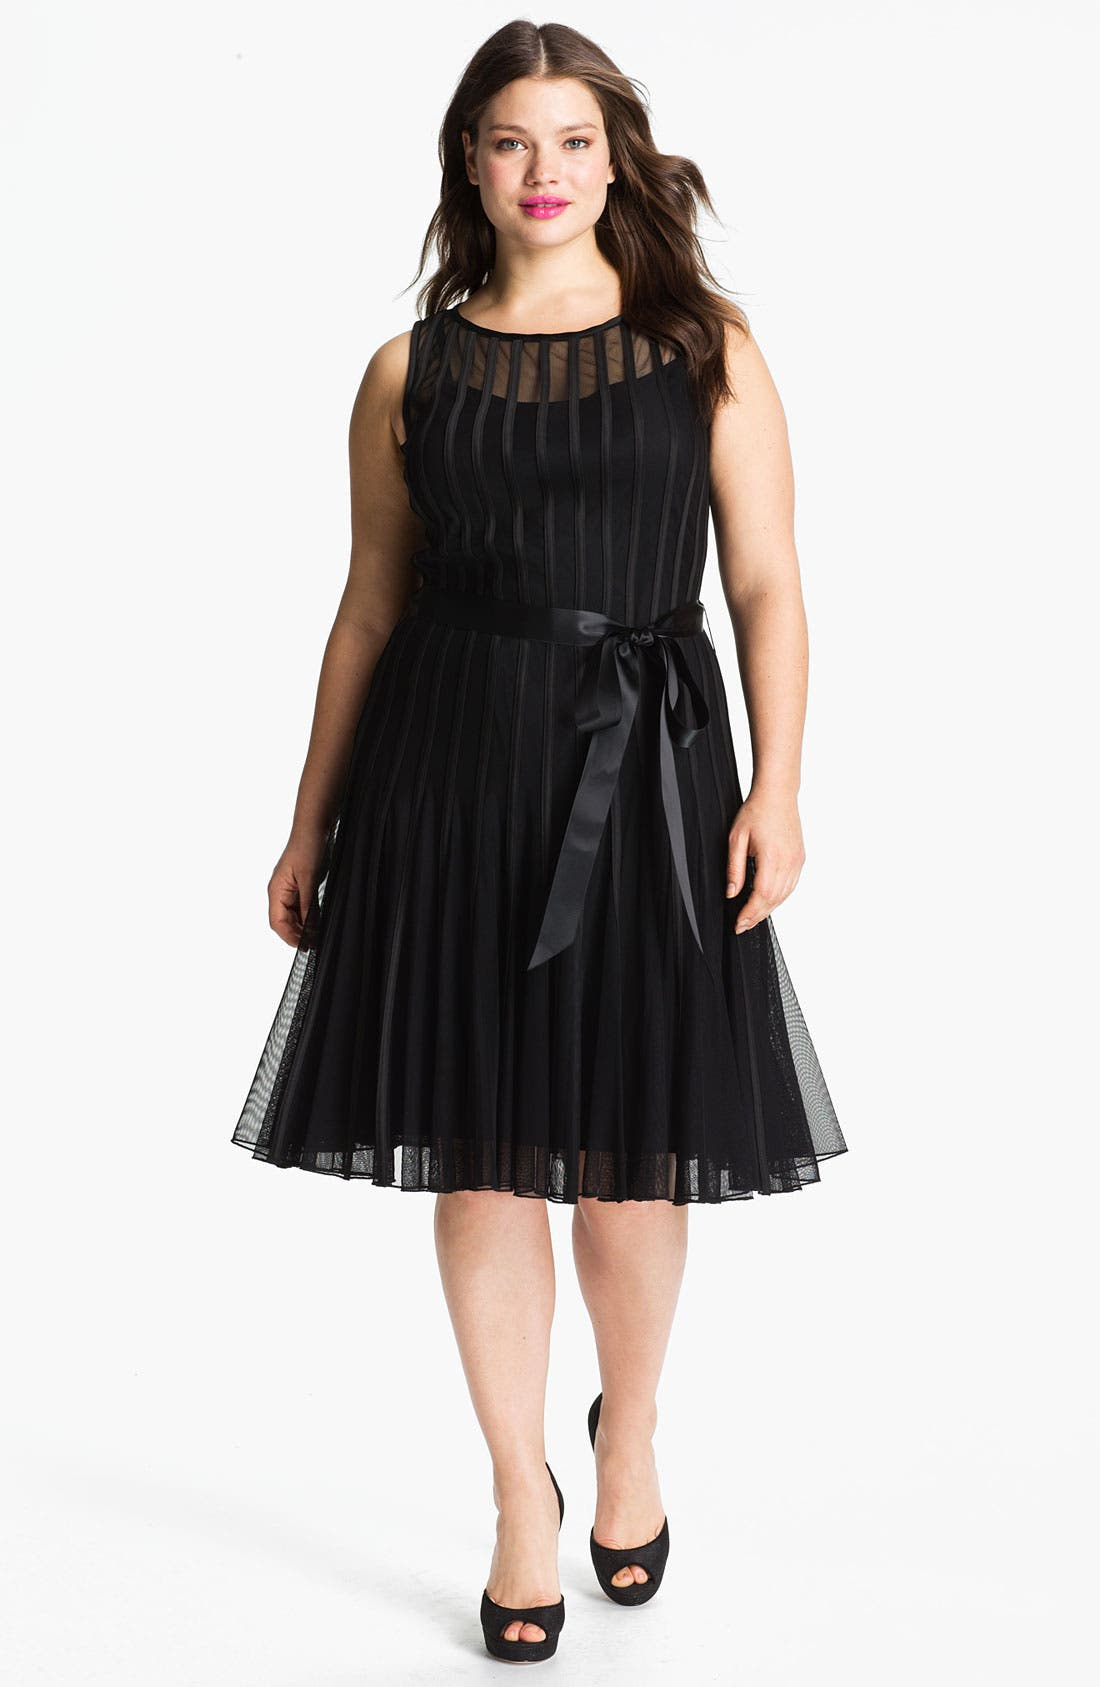 Alternate Image 1 Selected - Xscape Sleeveless Satin Stripe Mesh Dress (Plus Size)